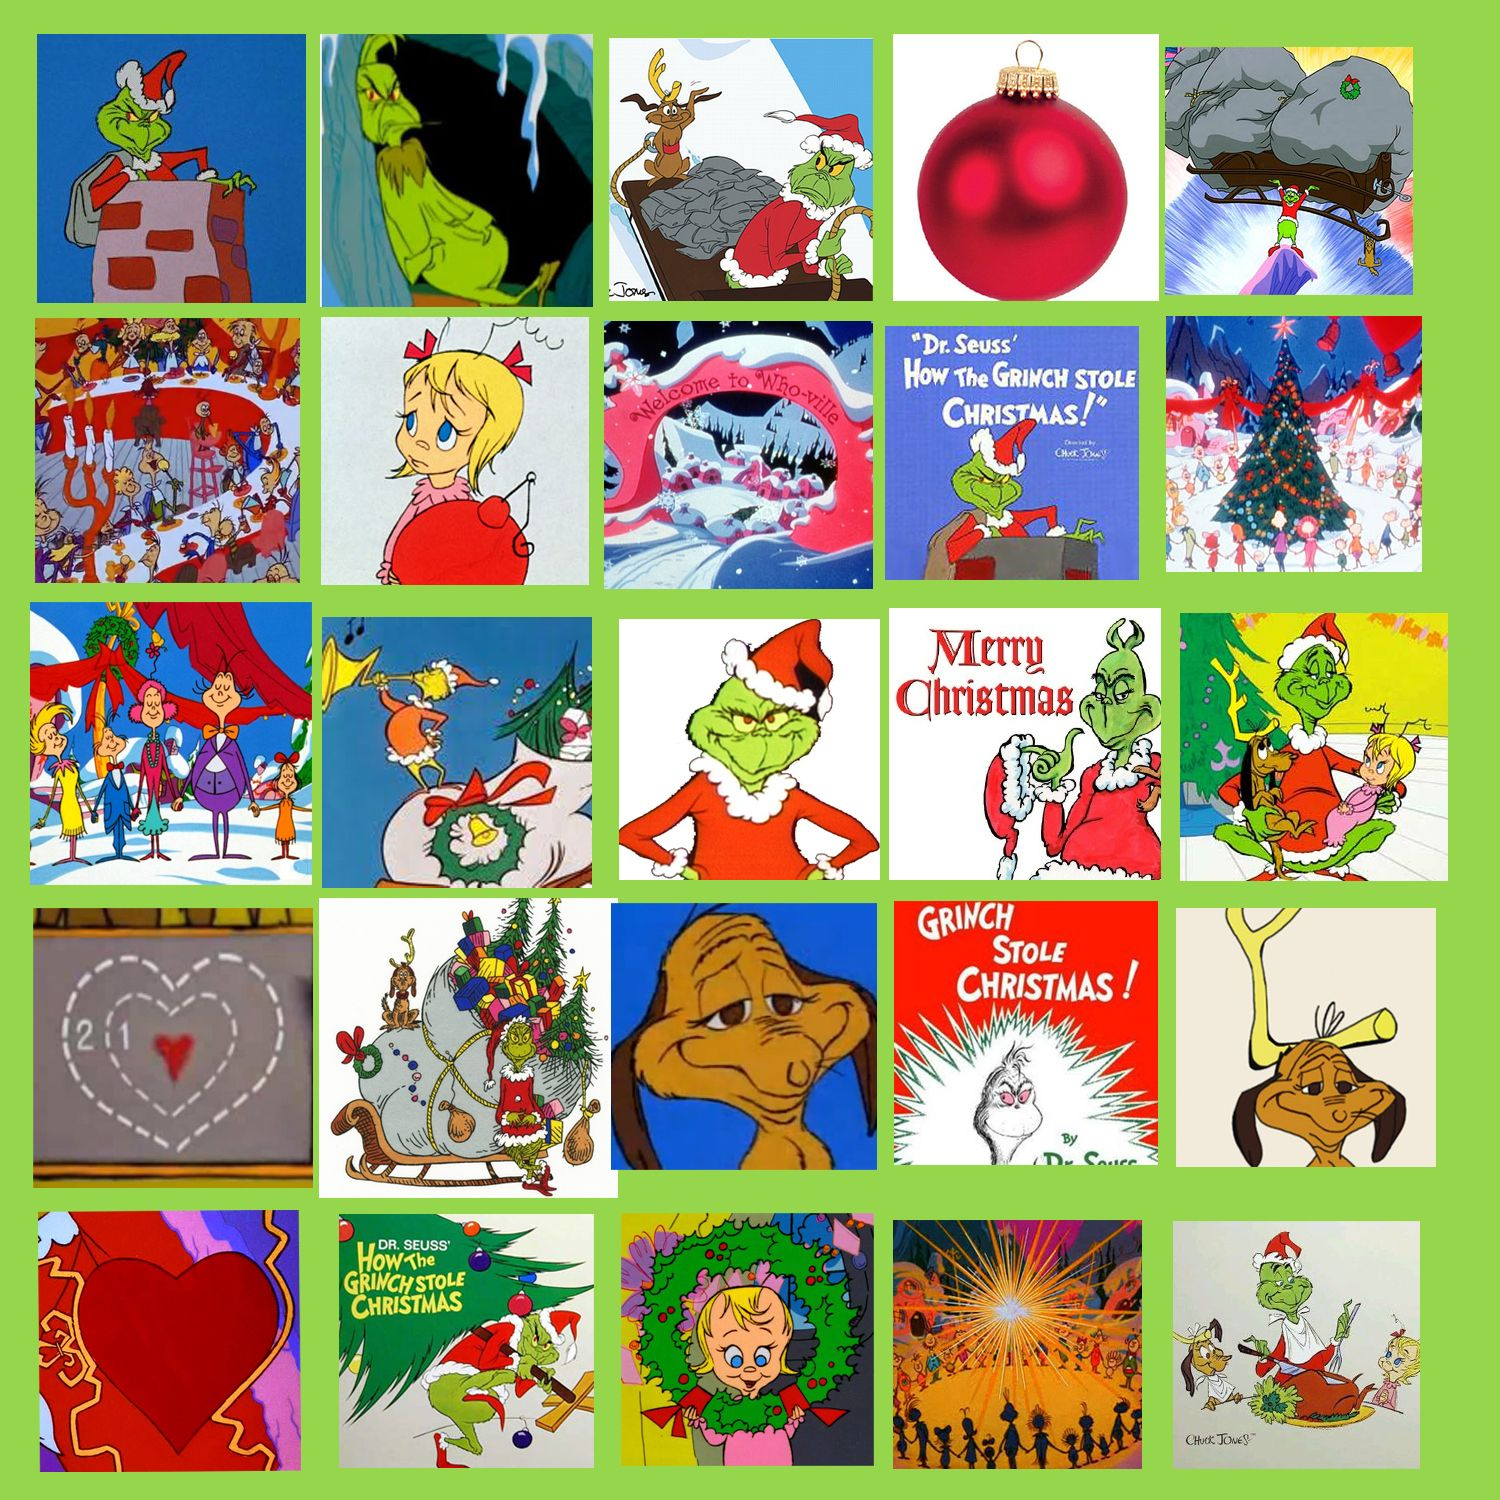 My Own Grinch Bingo Card. I Found 25 Different Images On